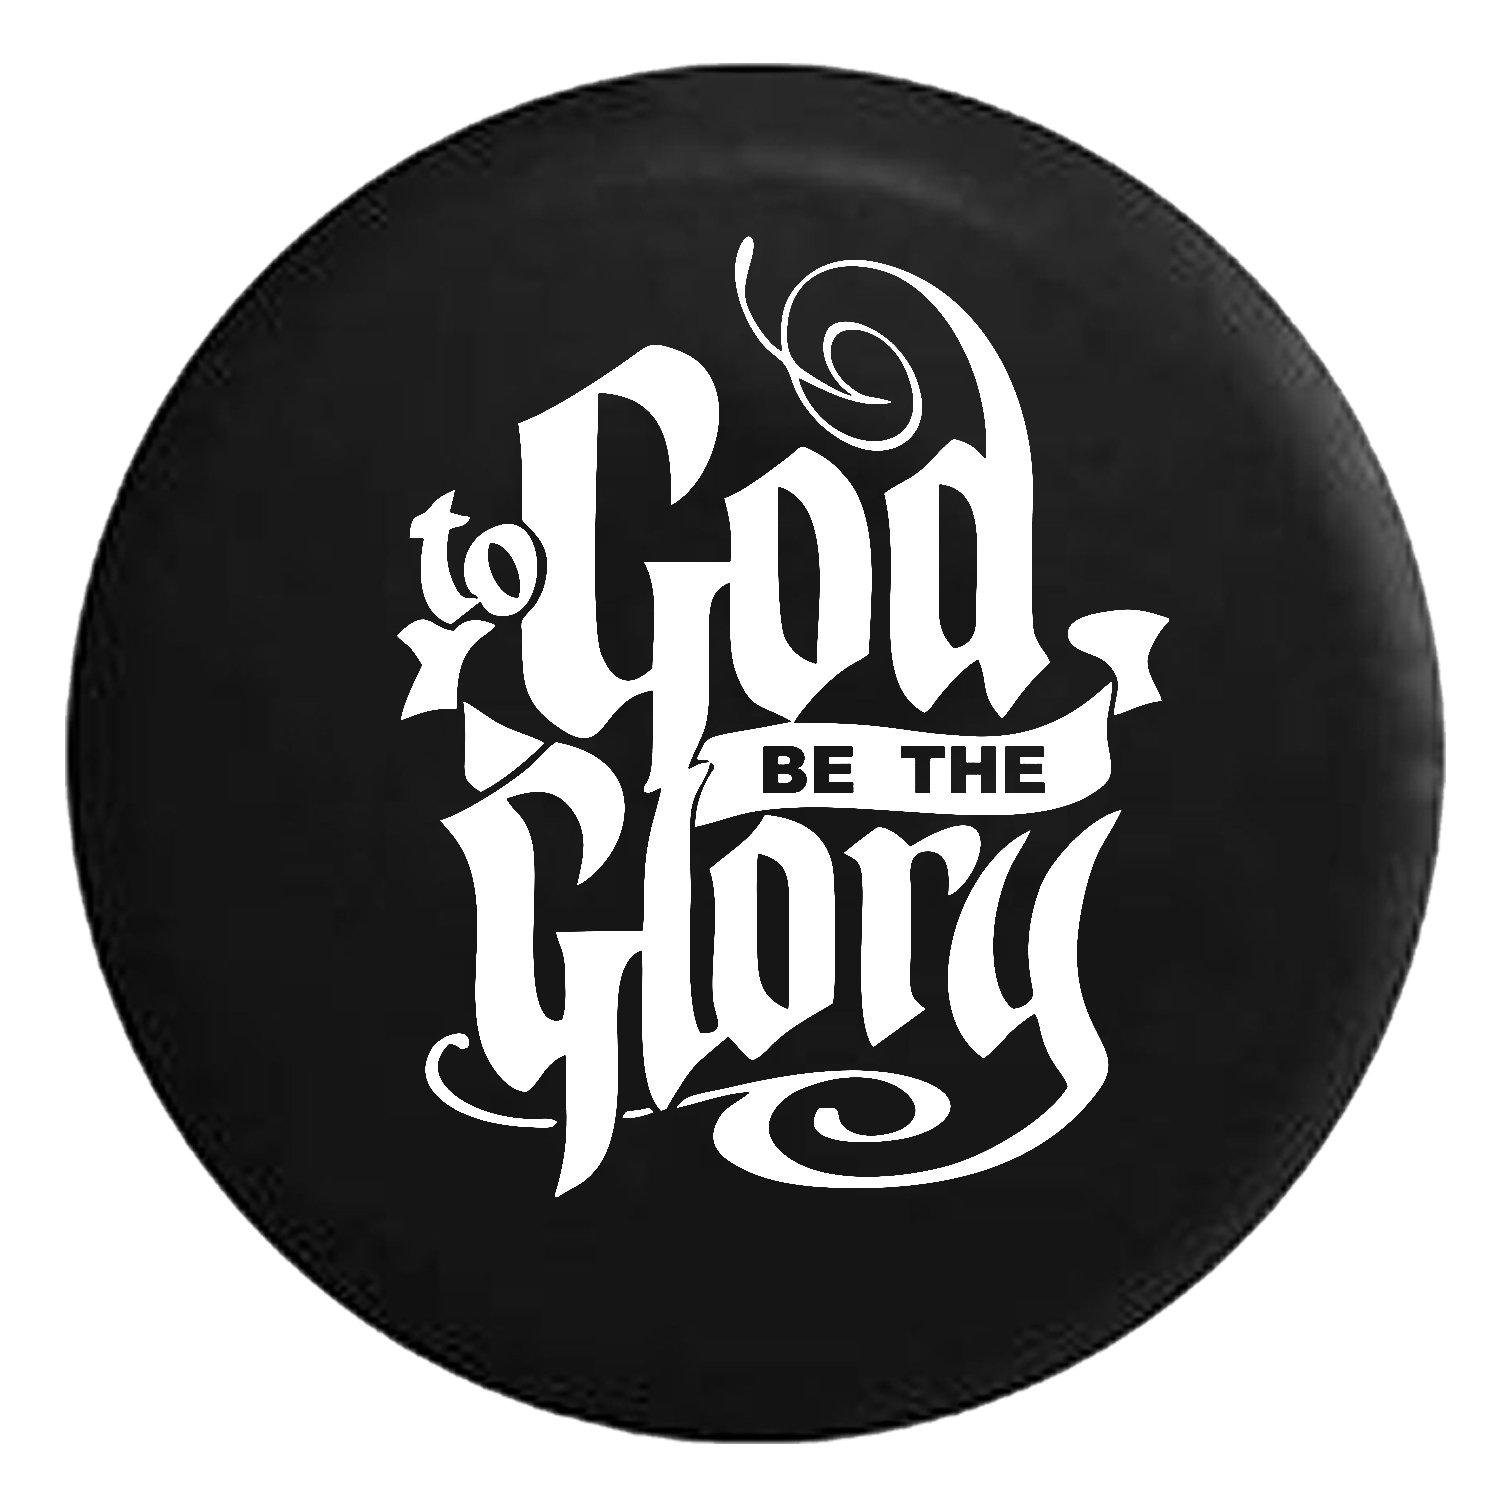 amazon to god be the glory jesus christian spare jeep wrangler 2017 Jeep Wrangler amazon to god be the glory jesus christian spare jeep wrangler c er suv tire cover orange ink 35 in automotive